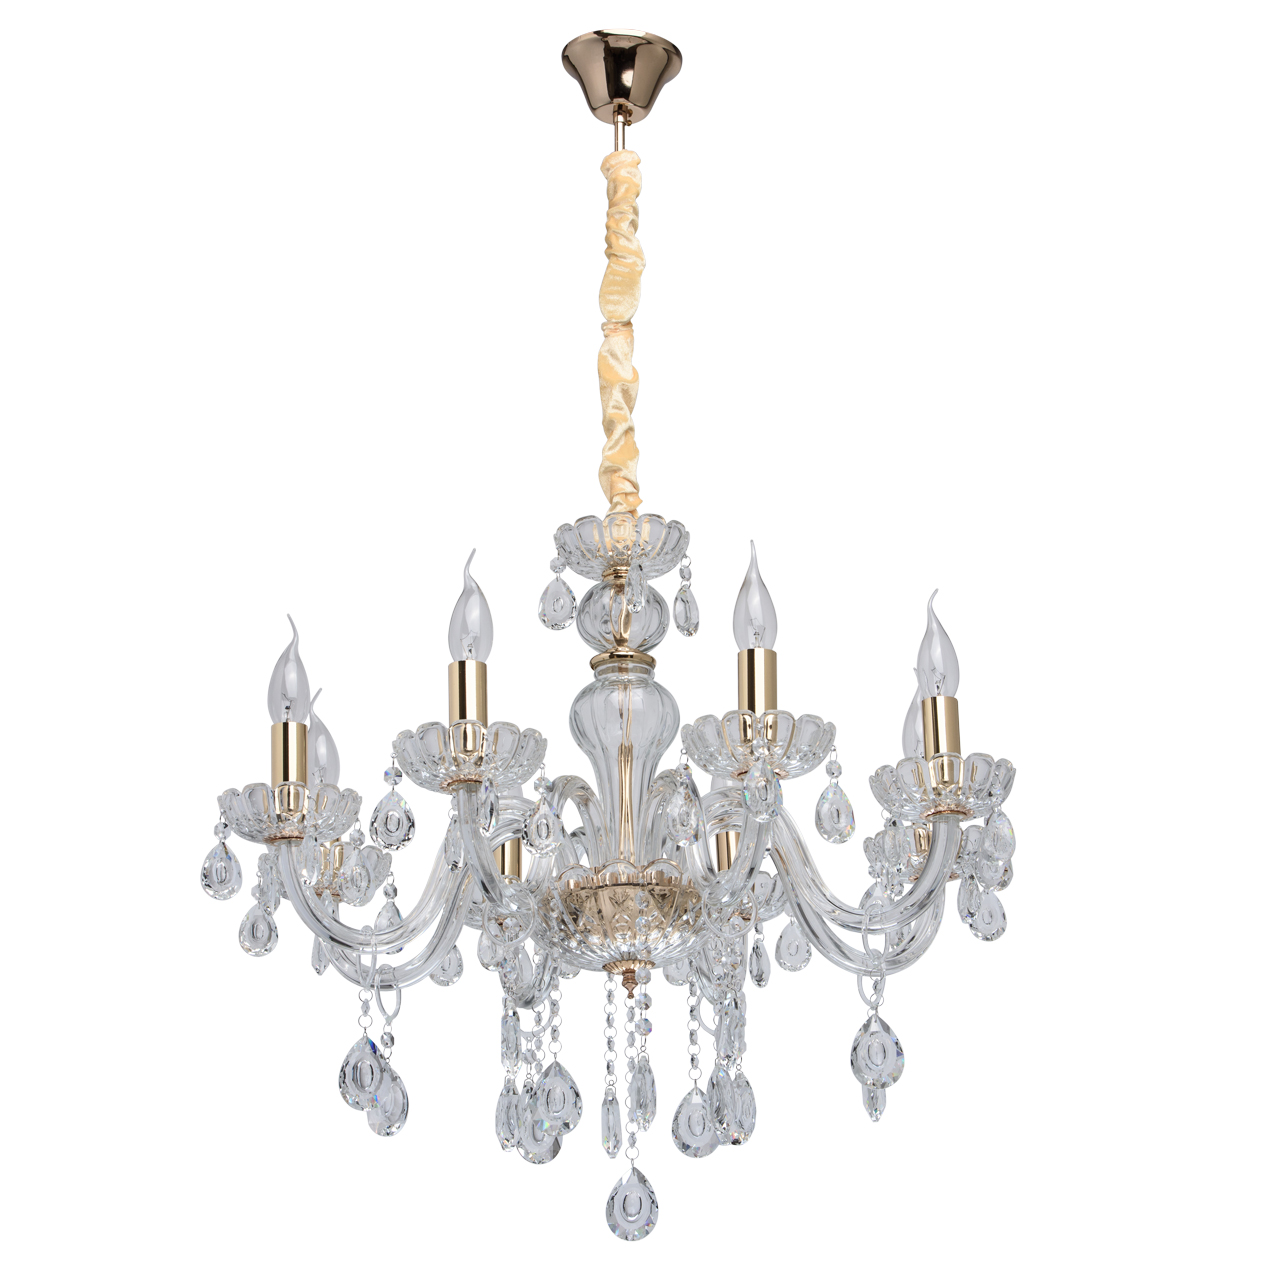 Люстра MW-LIGHT Каролина 367014408